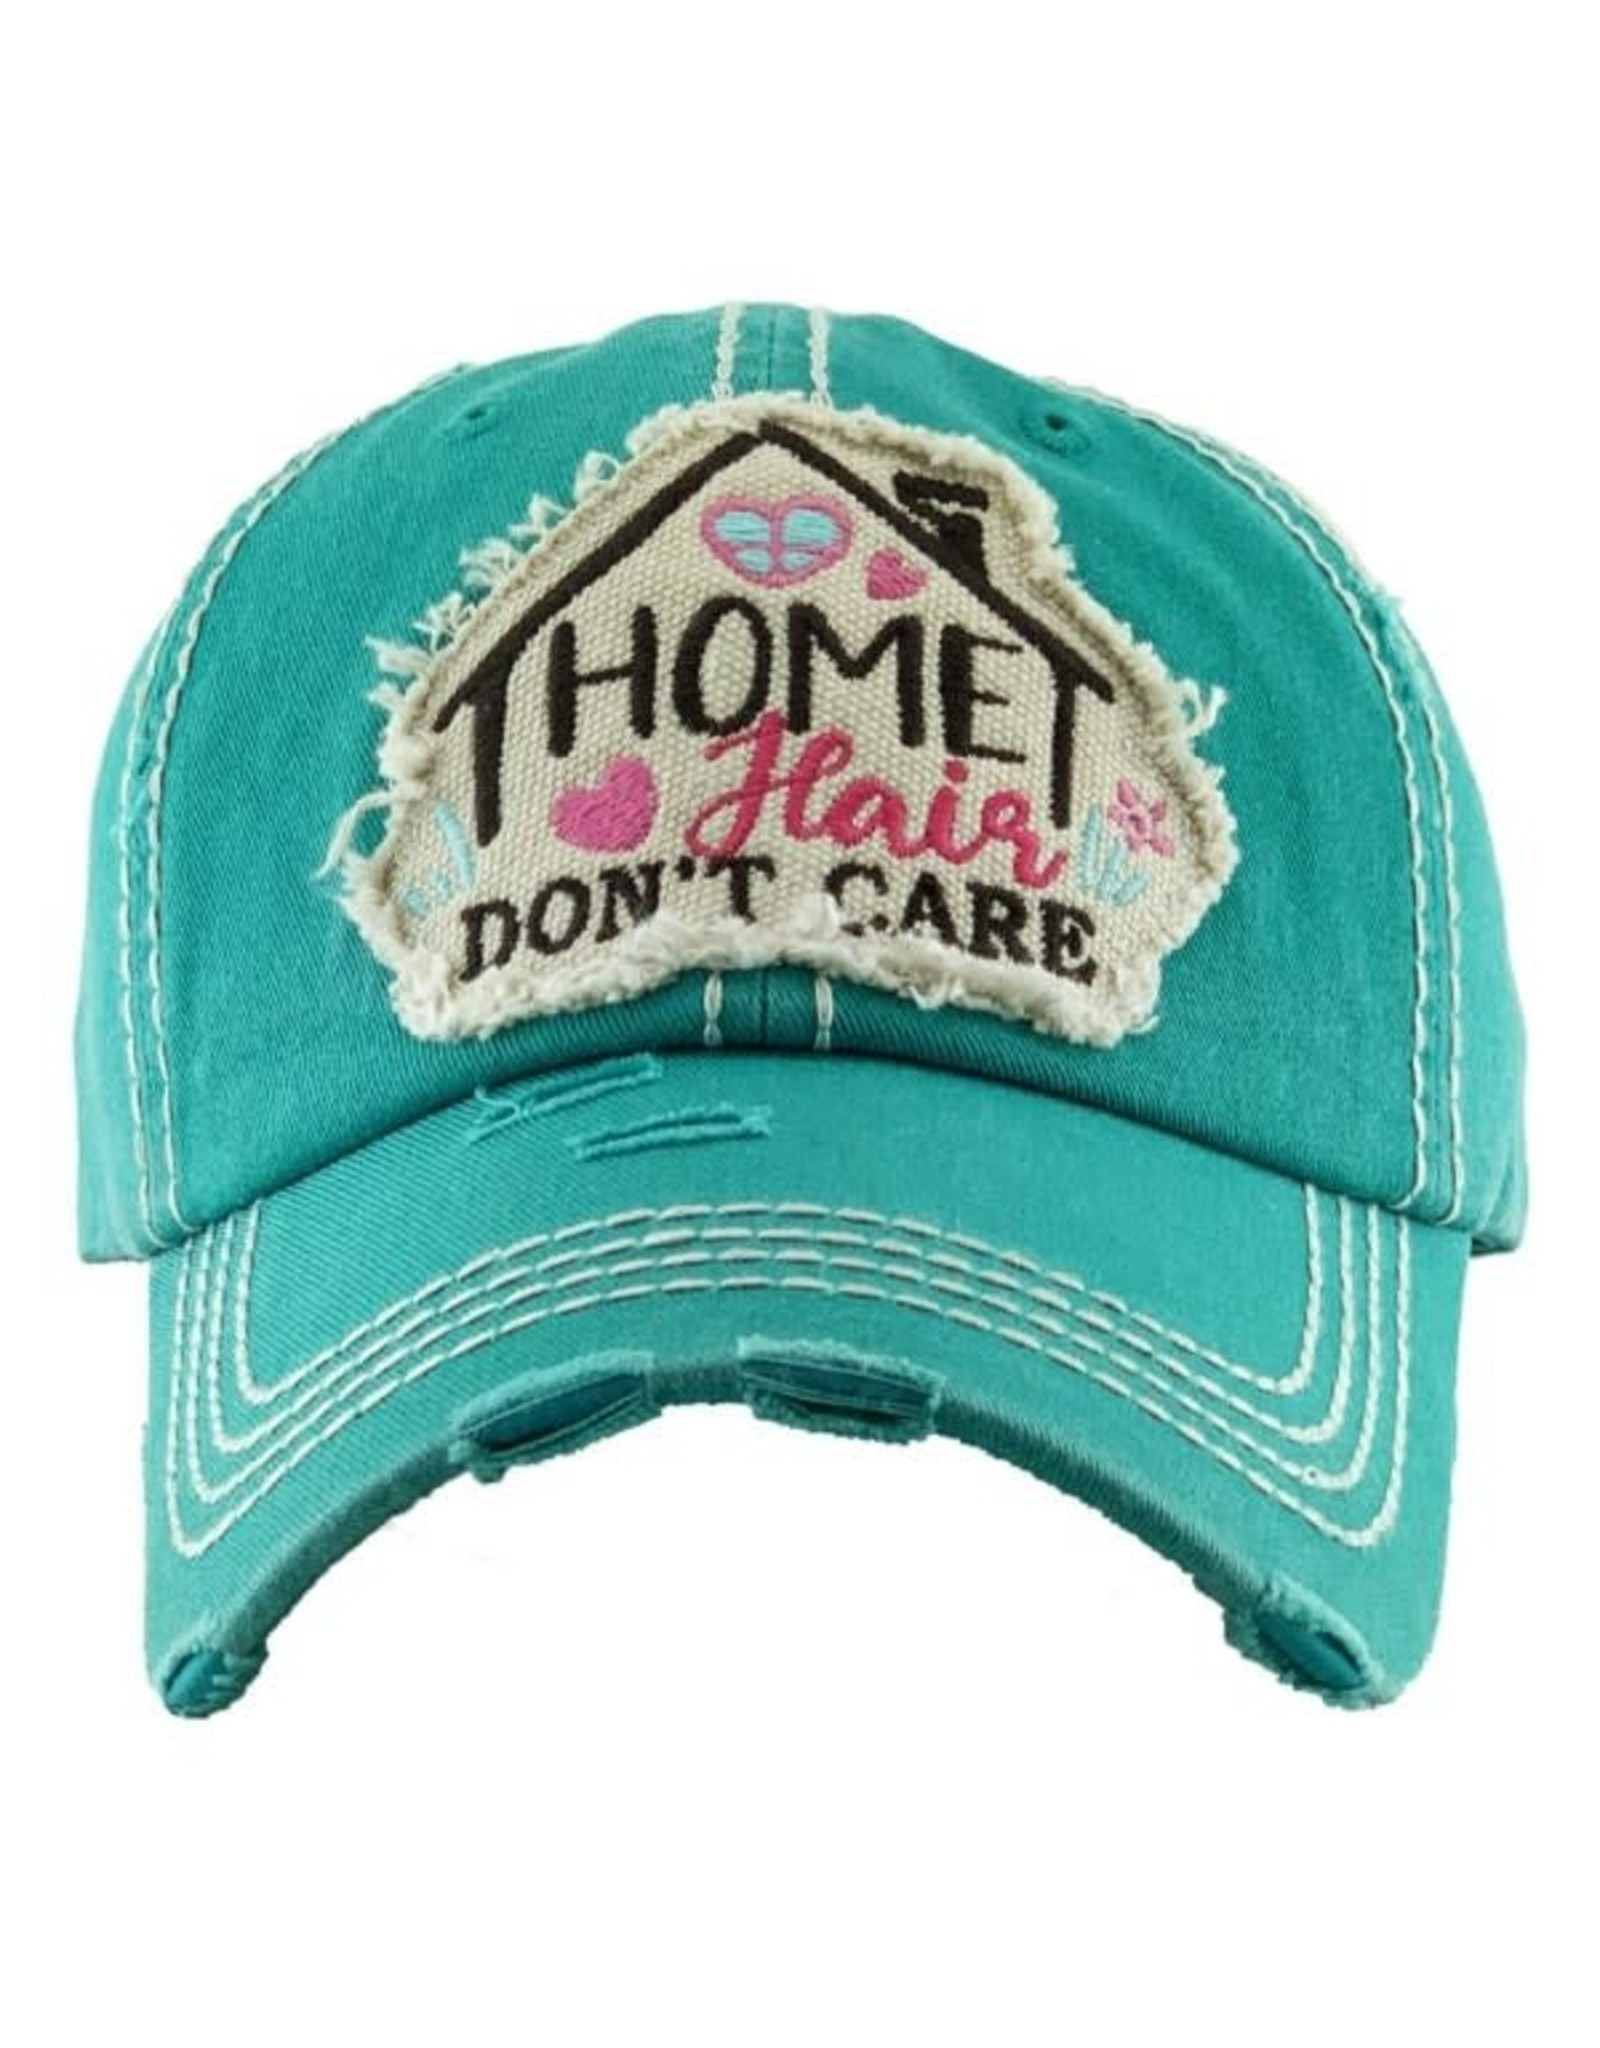 """""""Home Cair Dont Care"""" Dk. Turq. Distressed Hat"""